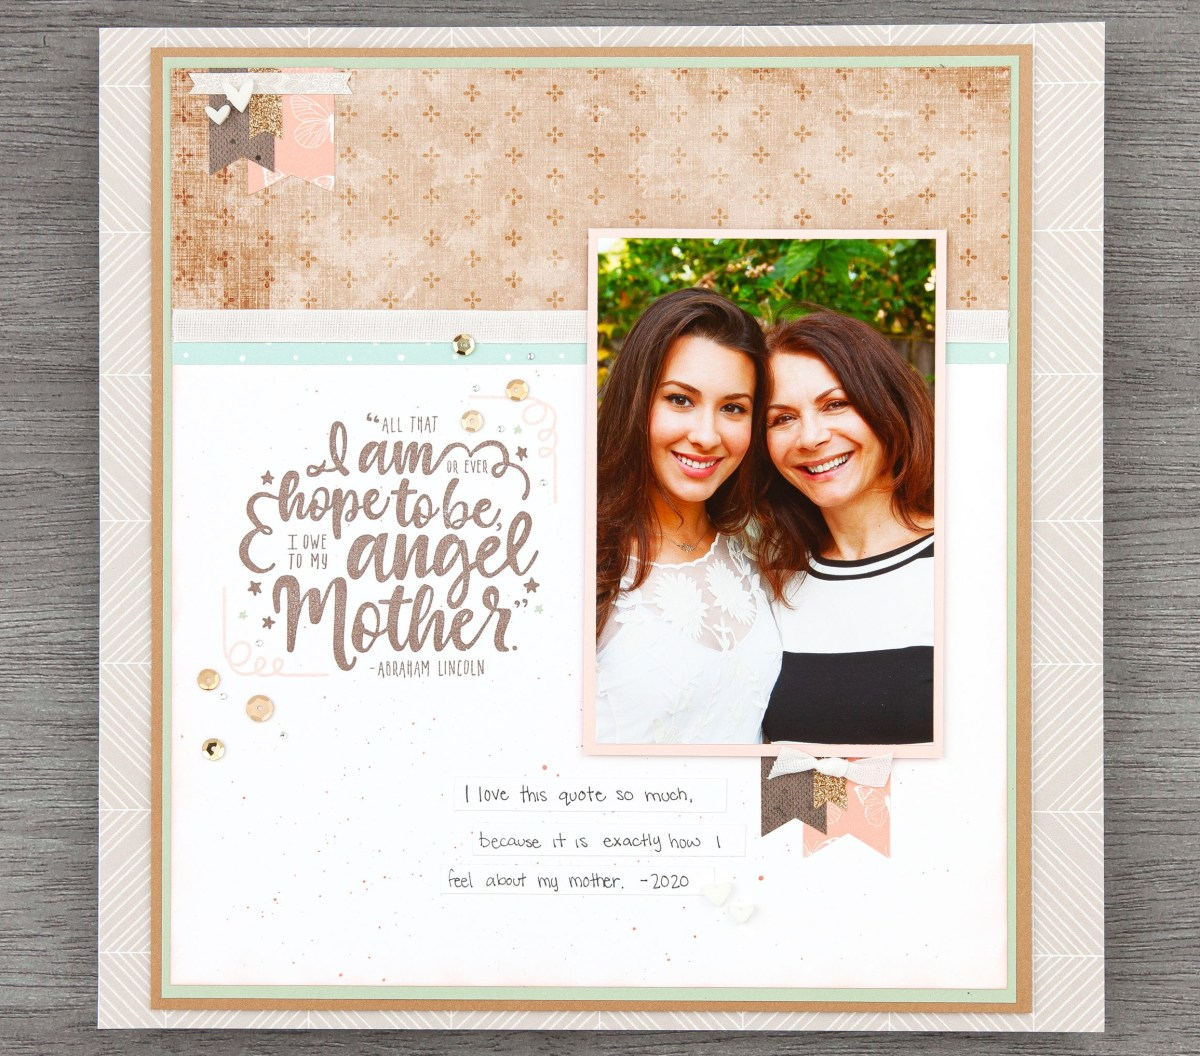 Mother's Day Cards and Scrapbooking #ctmh #closetomyheart #loveformother #mother'sdaydoor #amazingmother #allthatIam #mother'sday #cardmaking #scrapbooking #free #download #cardpattern #pattern